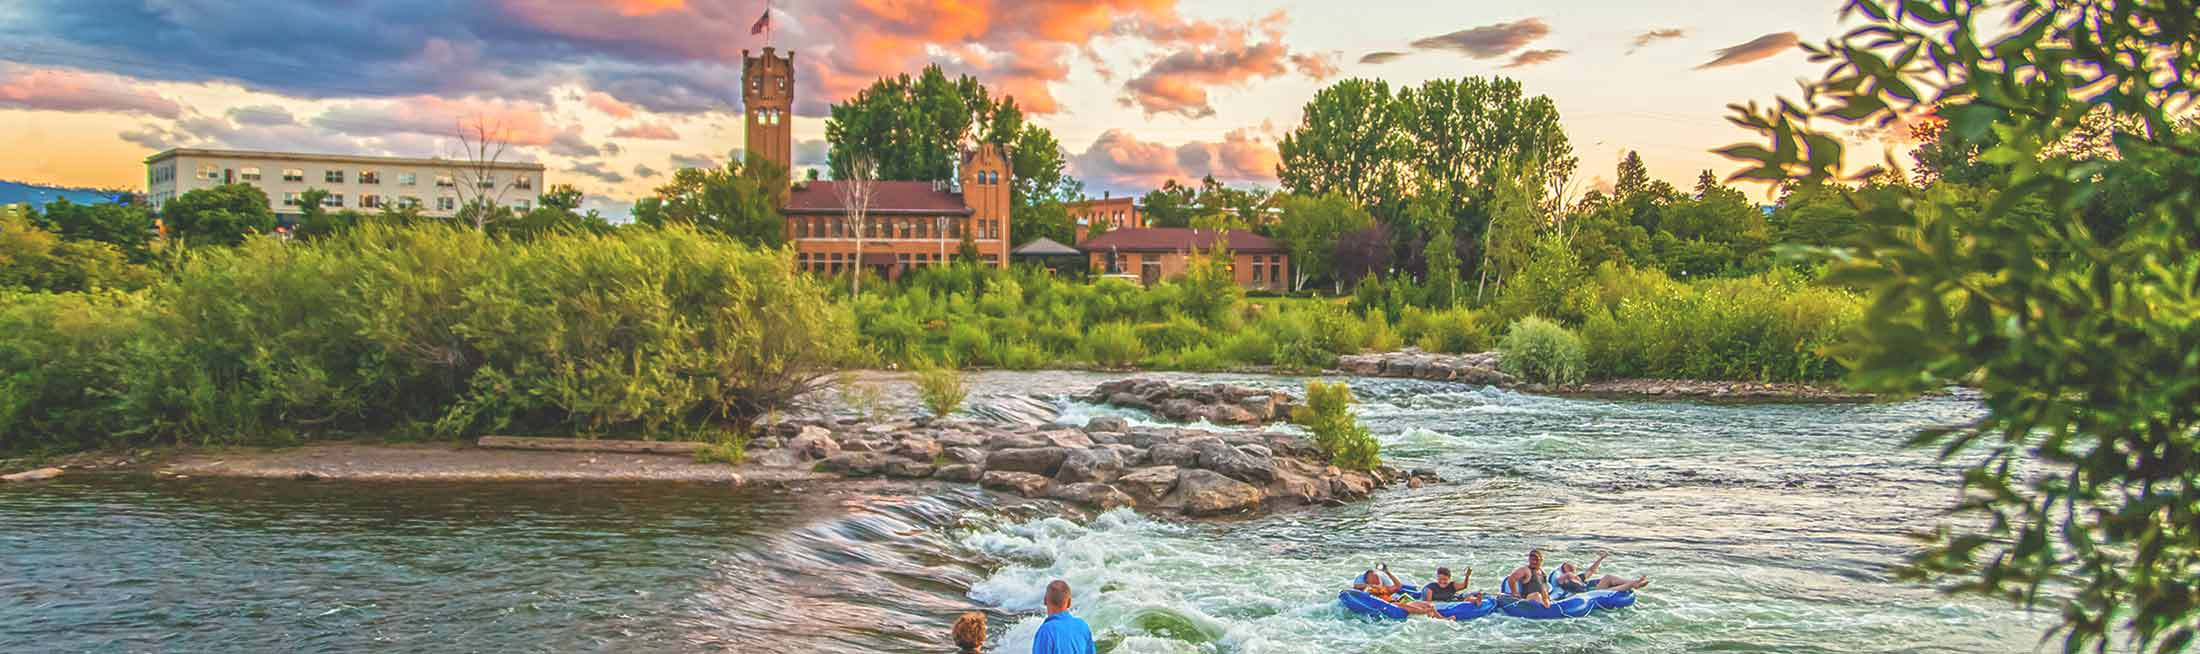 Tubing & Scenic Float Trips